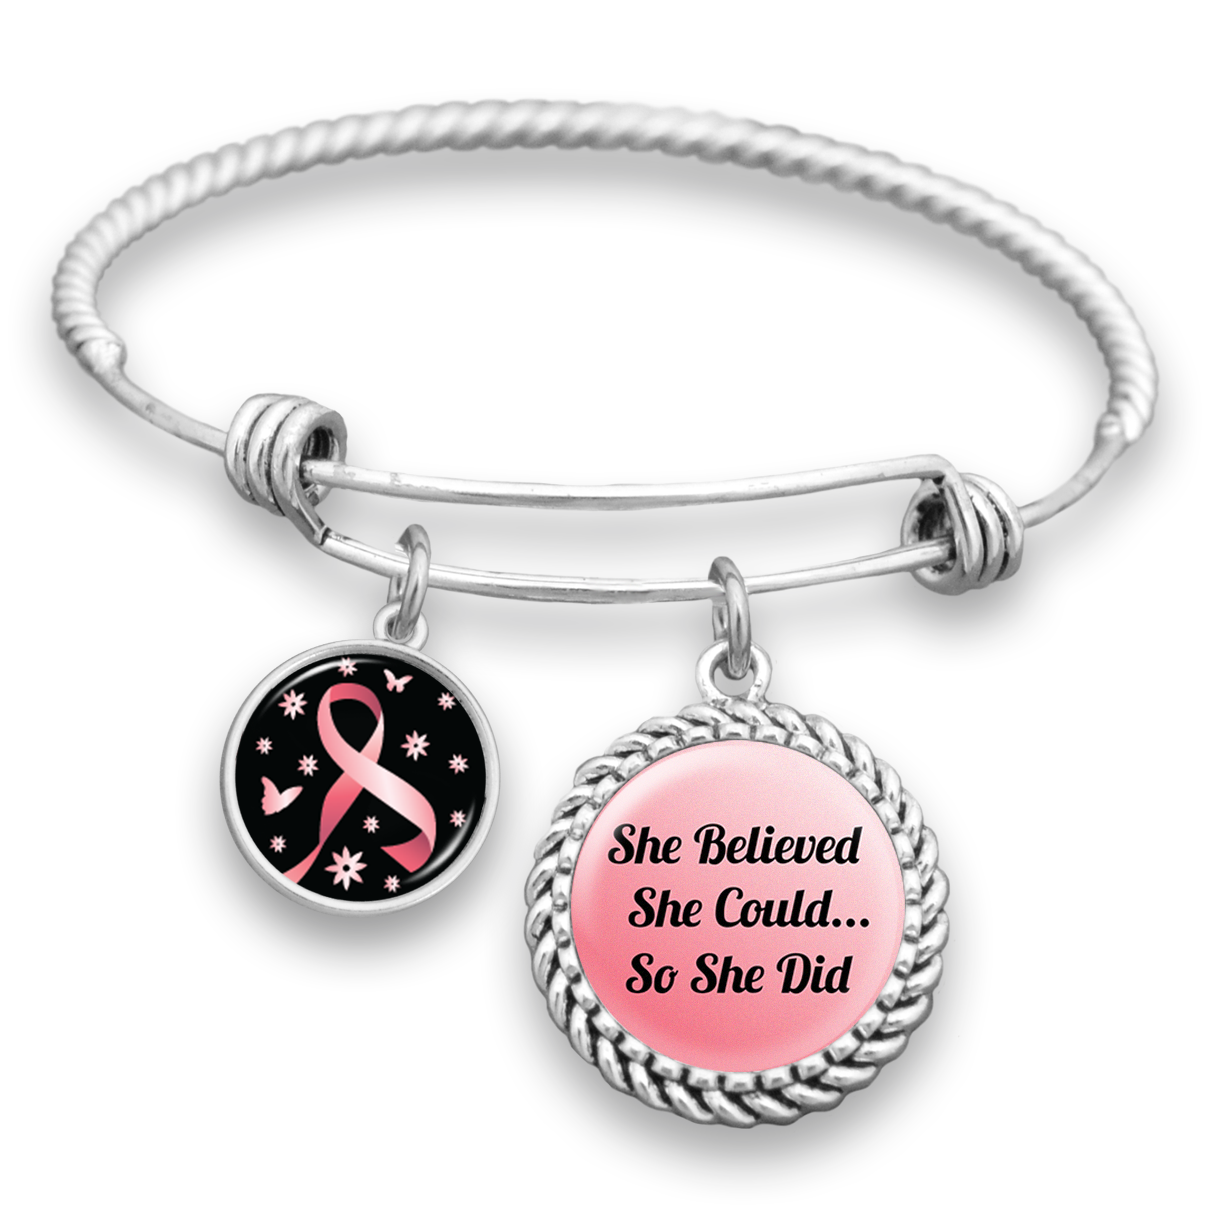 She Believed She Could So She Did Pink Ribbon Charm Bracelet